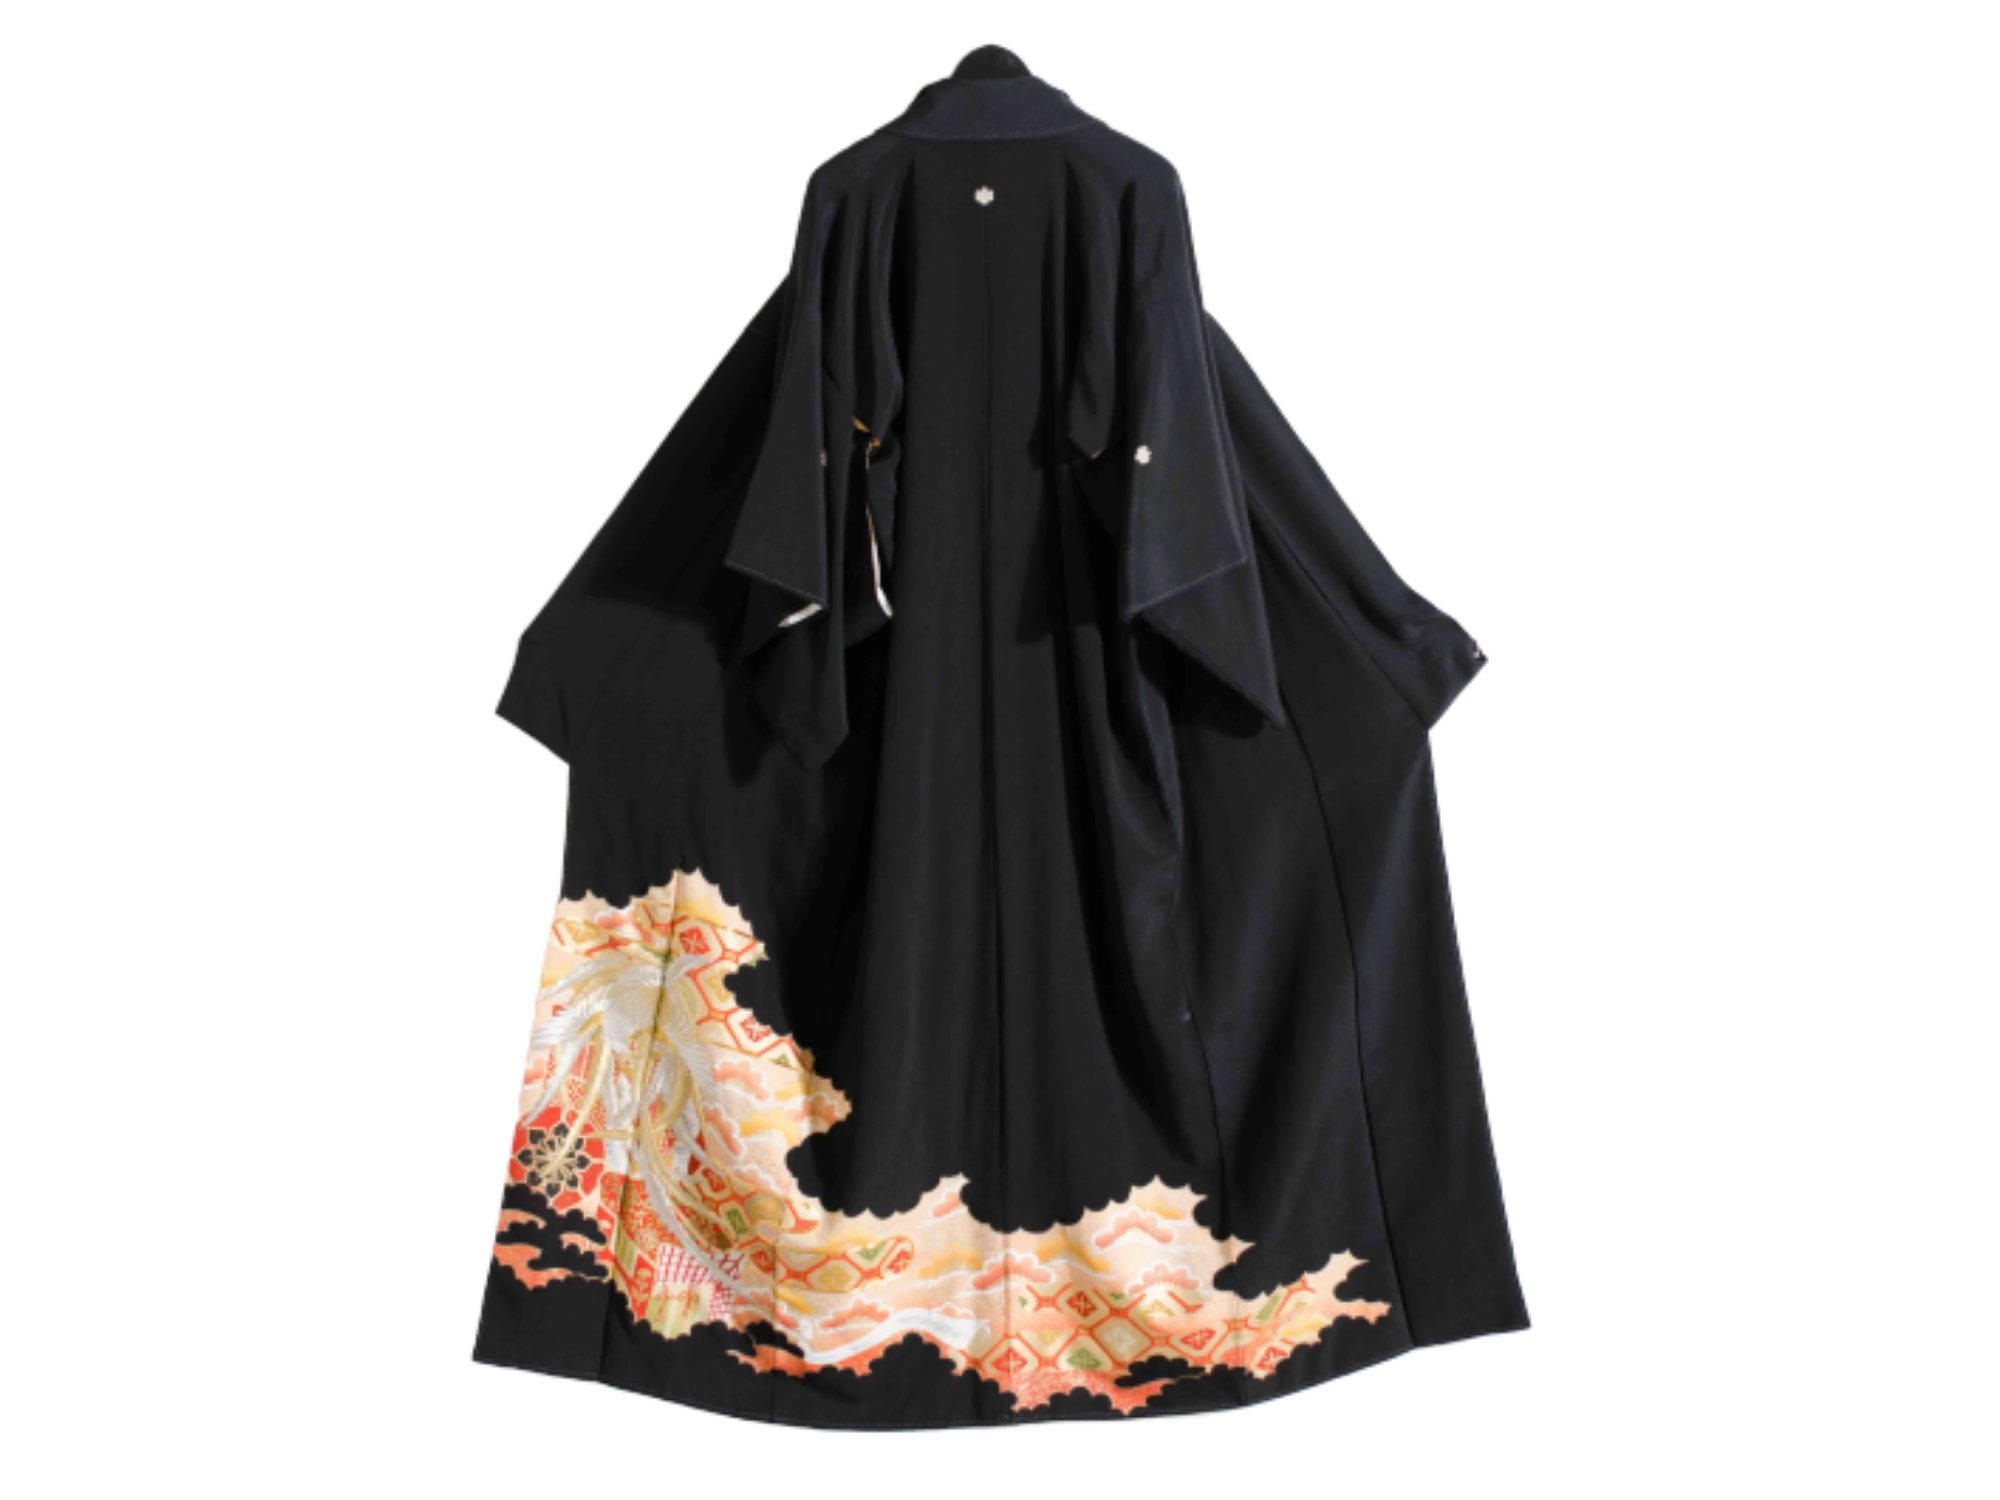 Embroidered Black Silk Kimono Robe